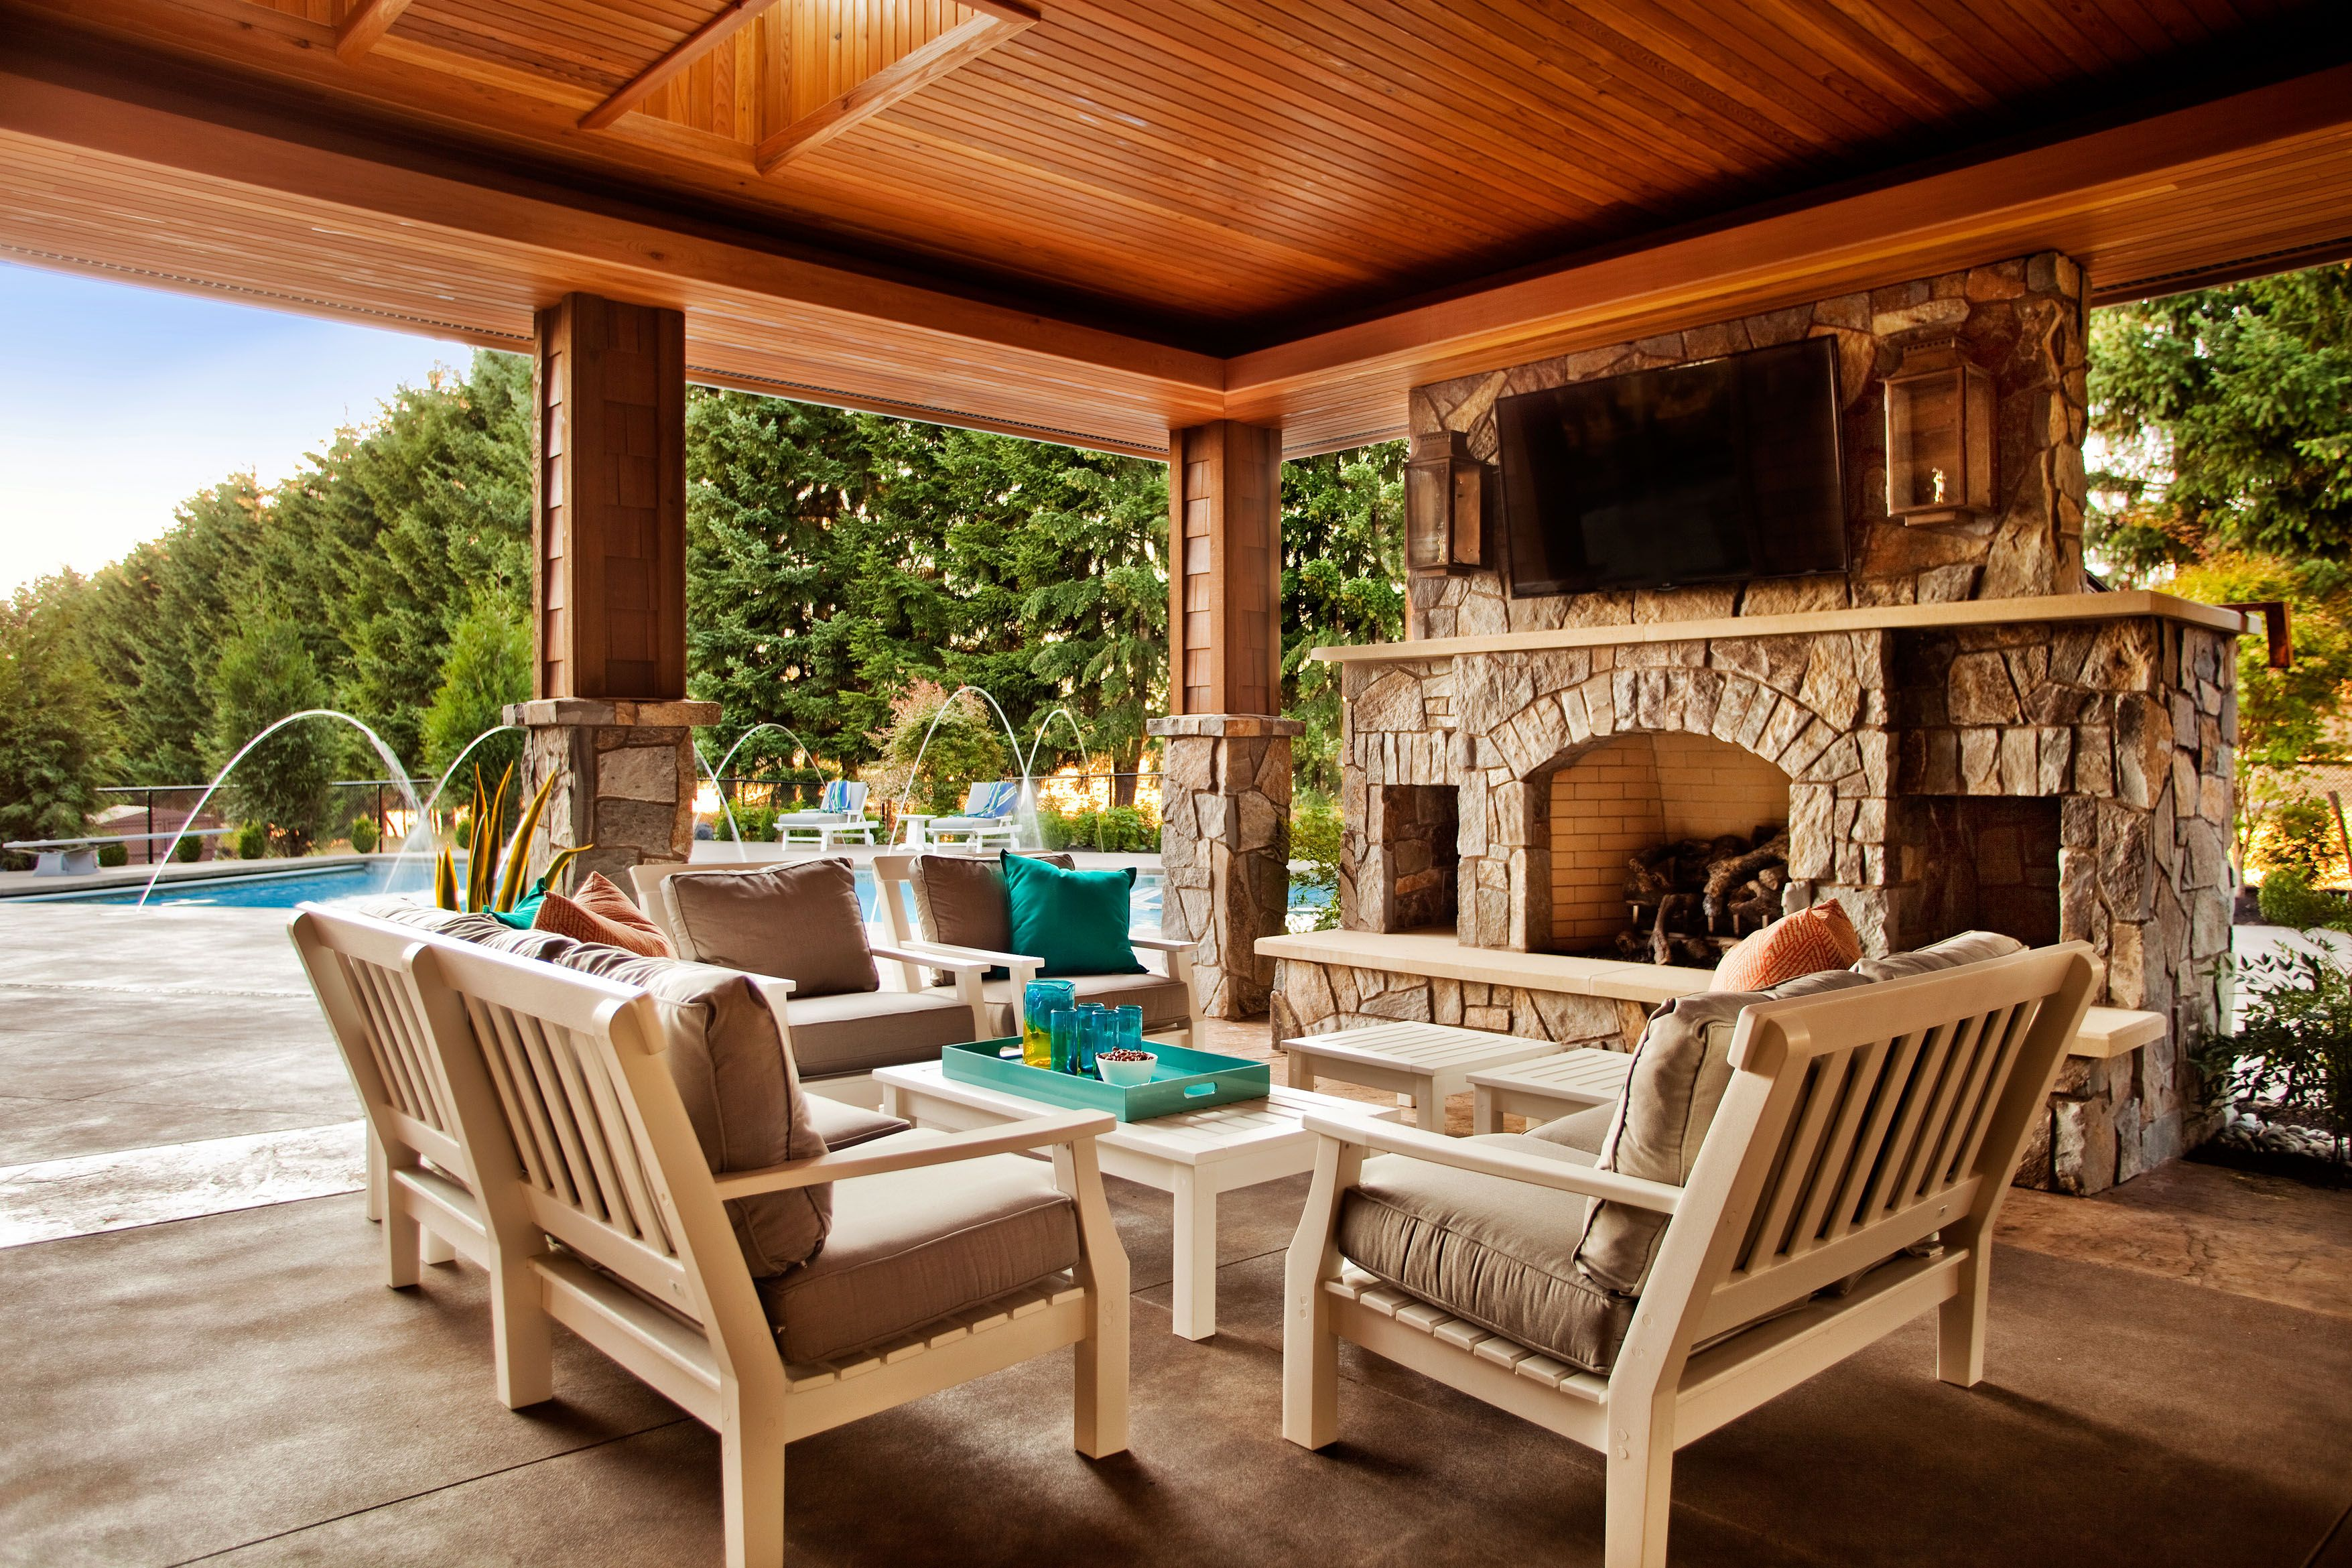 Surprising 17 Best Images About Wears Backyard Project On Pinterest Pool Inspirational Interior Design Netriciaus